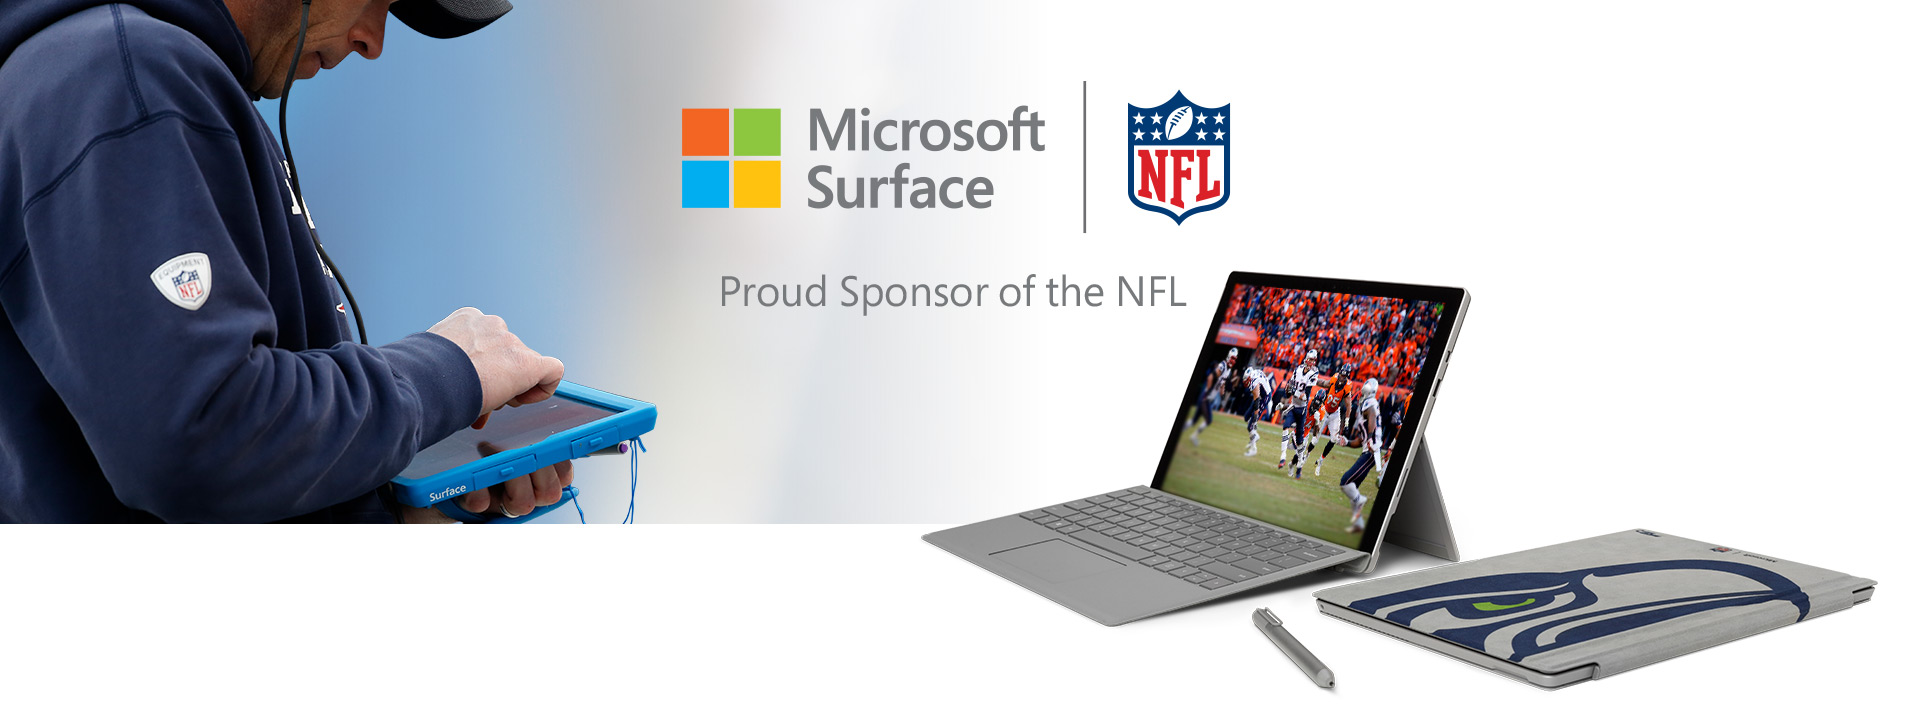 Microsoft Surface - NFL